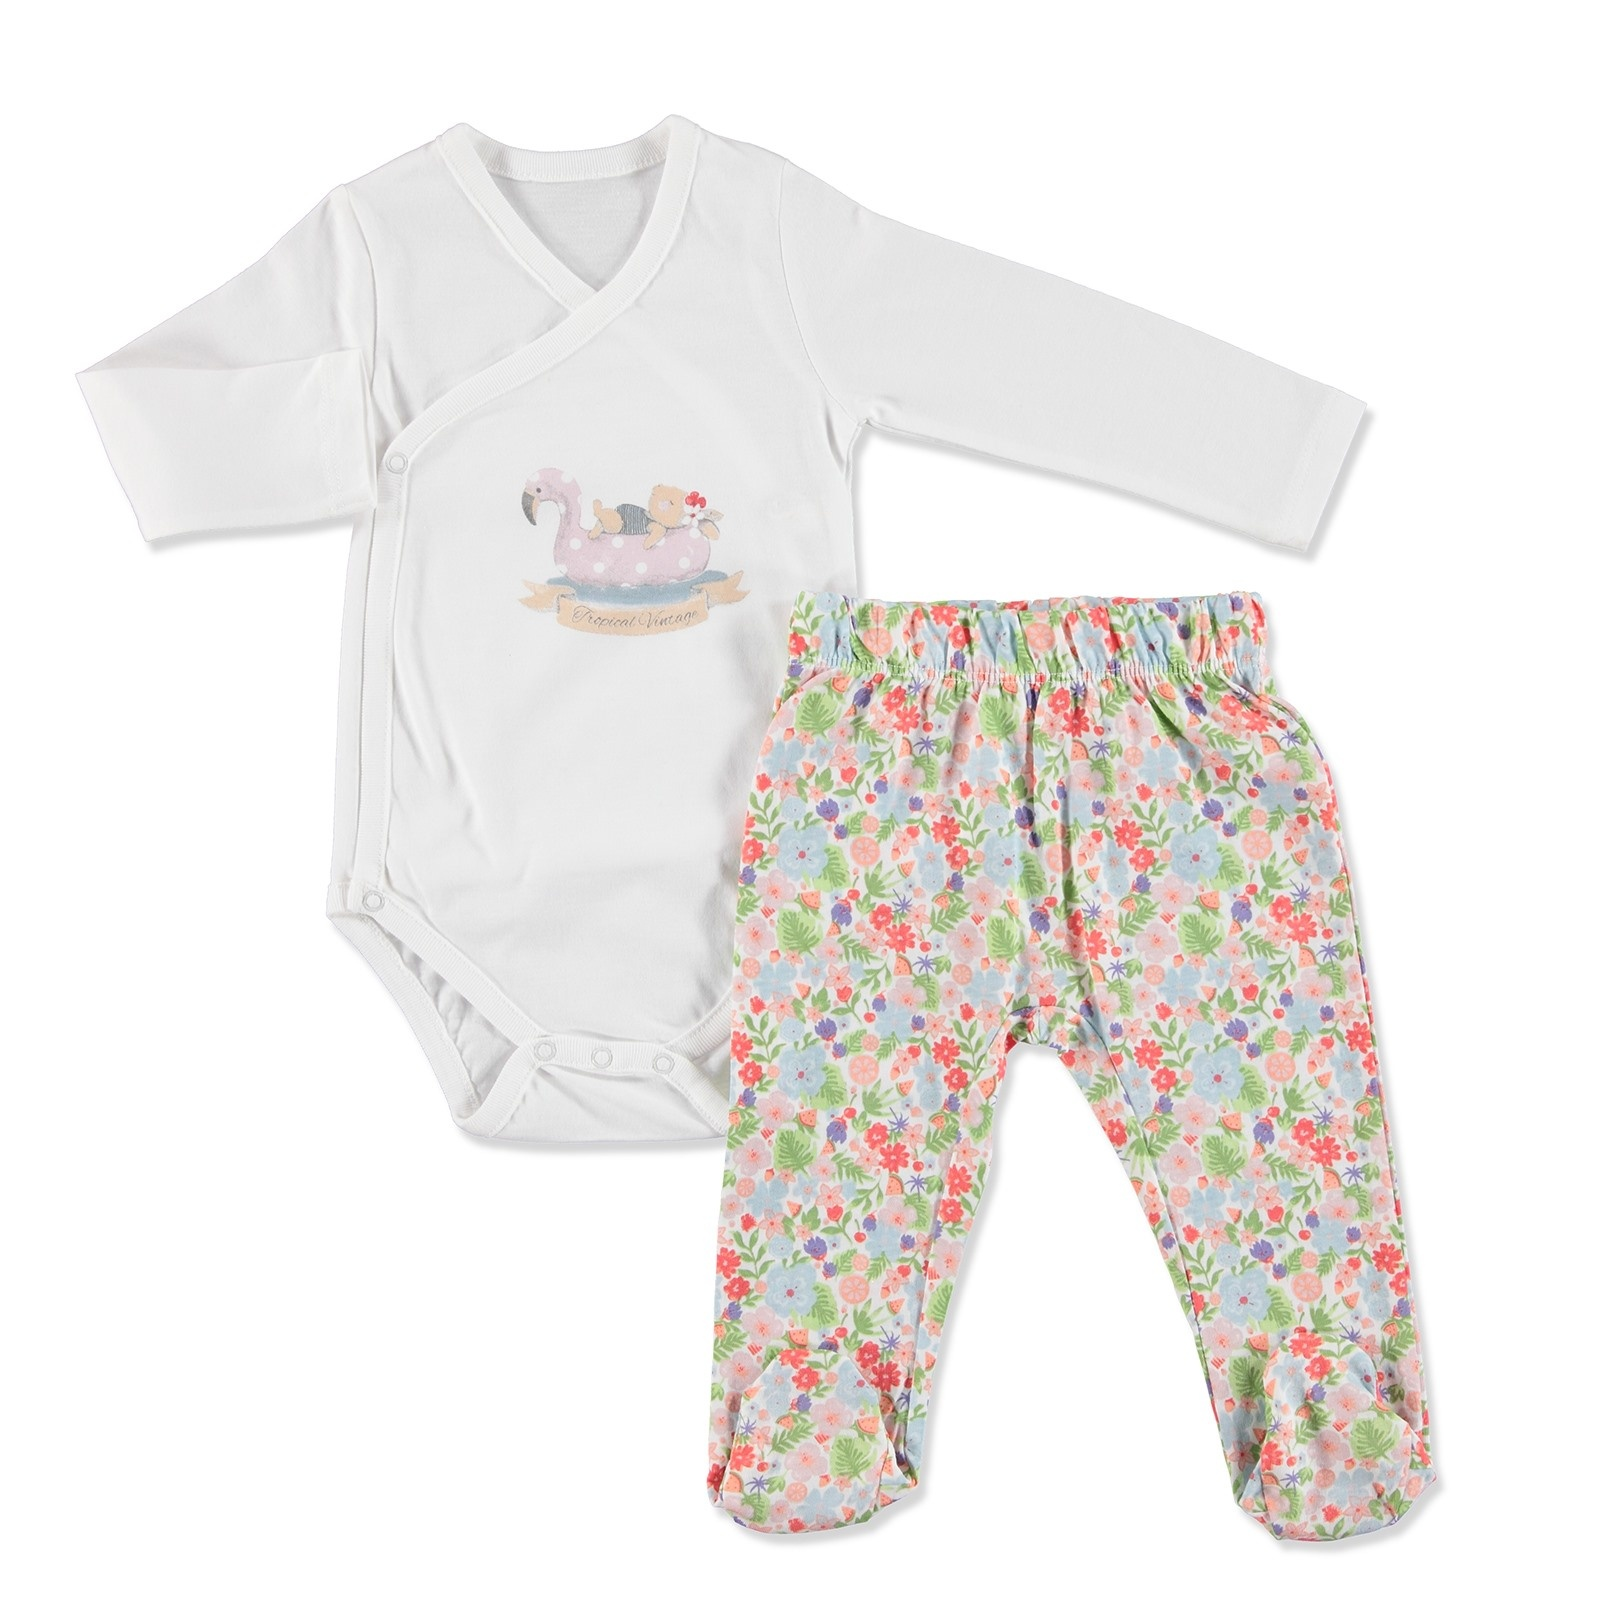 Ebebek Newborn Fashion Club Tropical Summer Baby Girl Bodysuit Pants Set